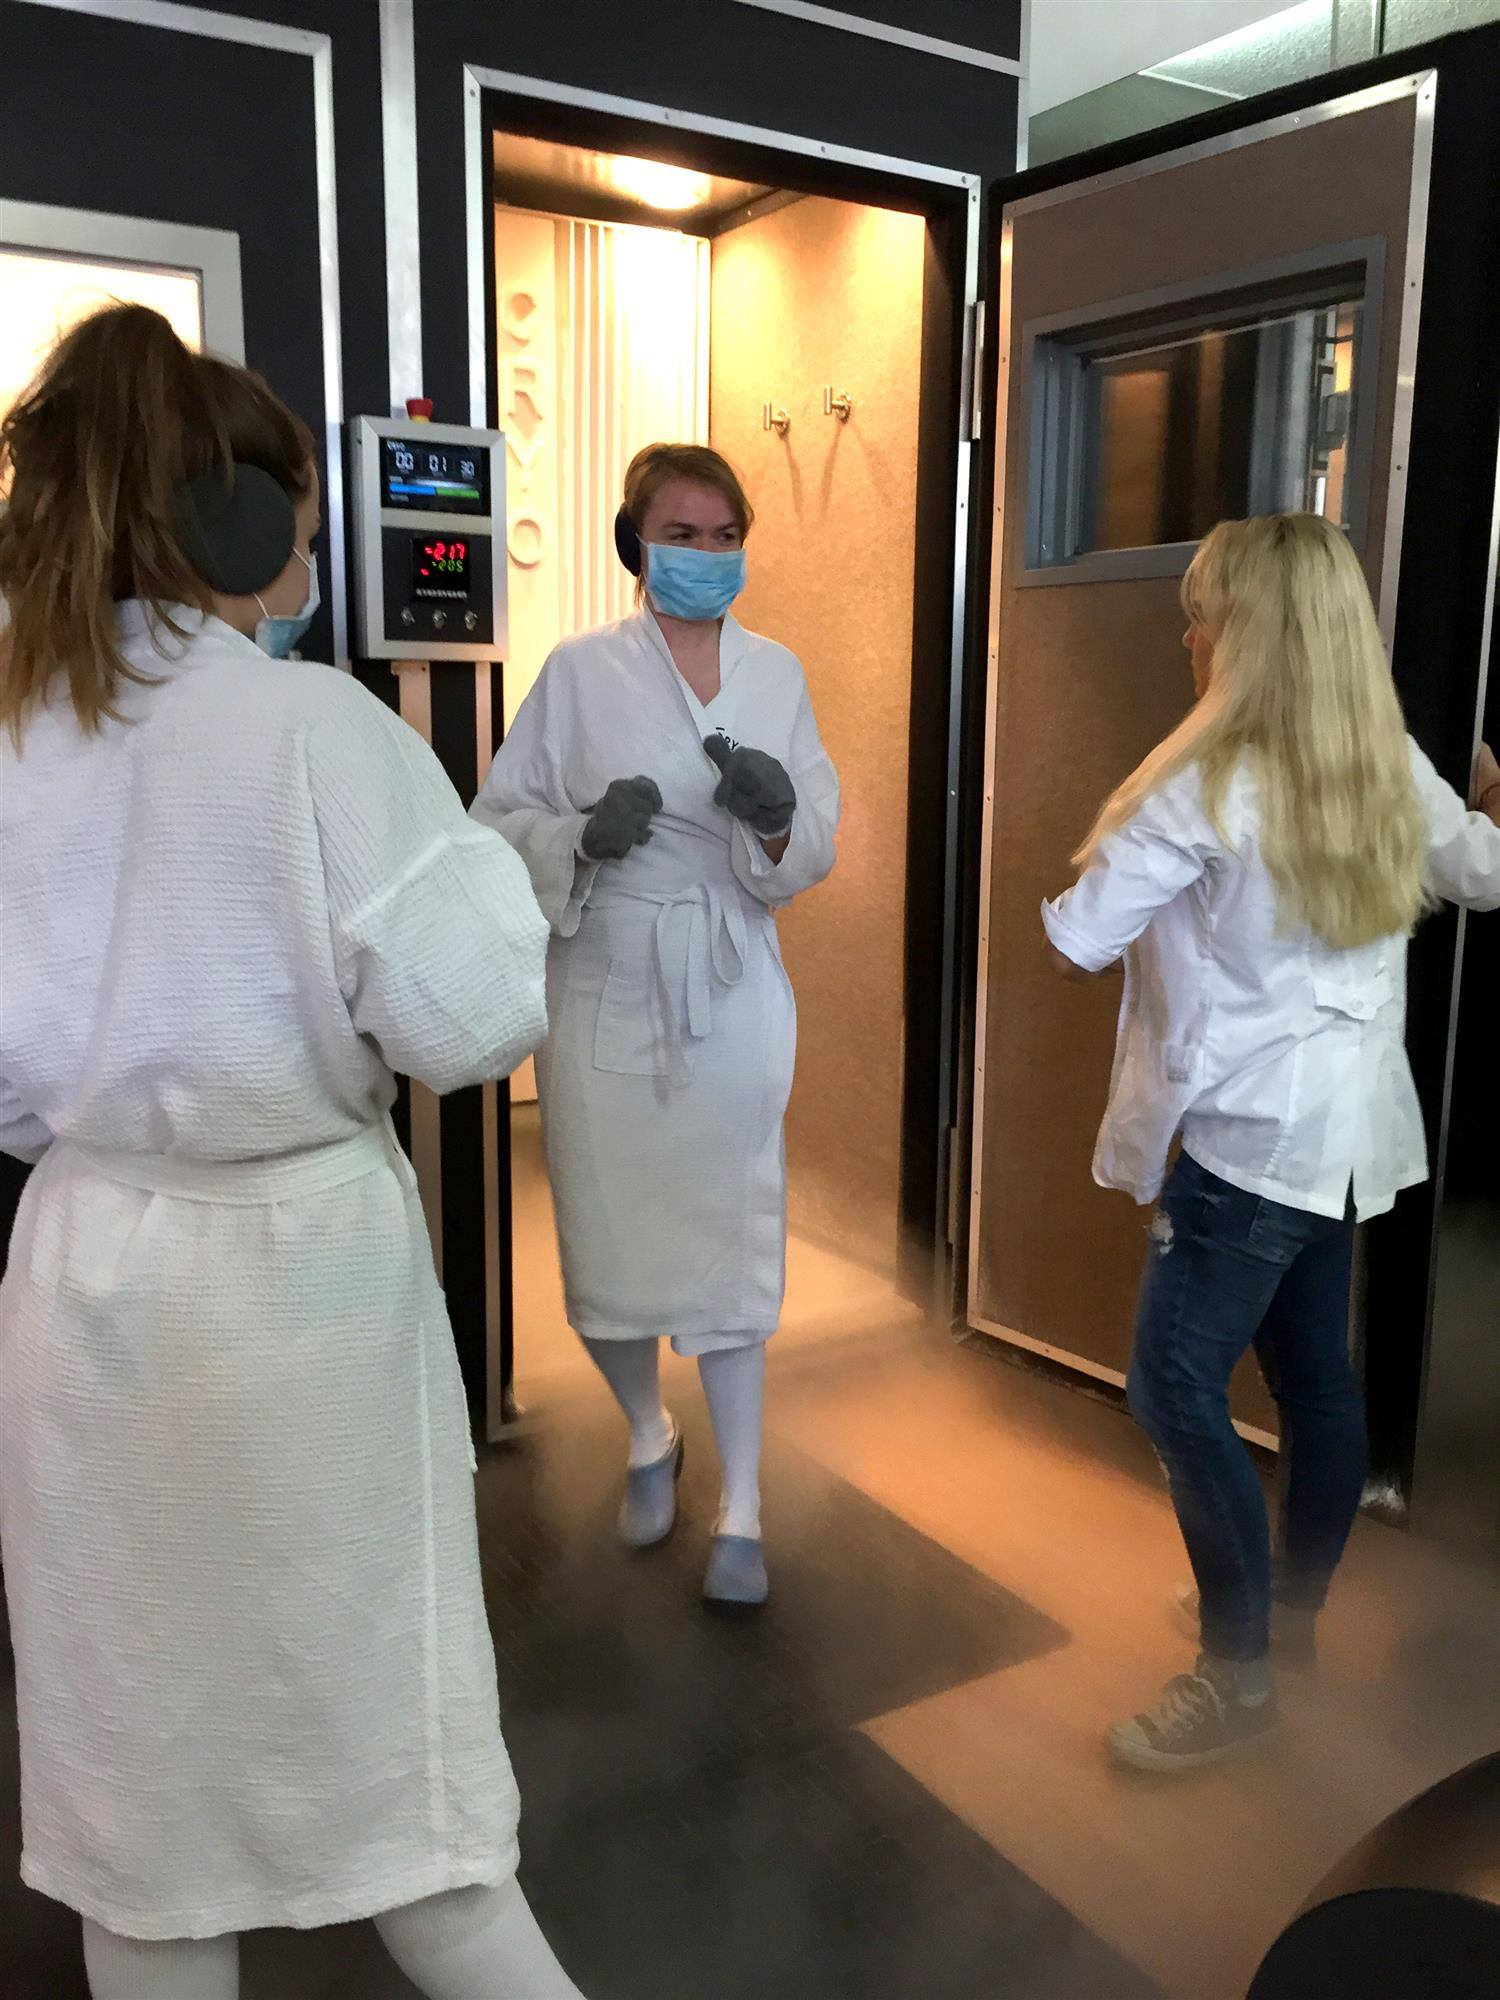 Exiting the Cryotherapy Chamber